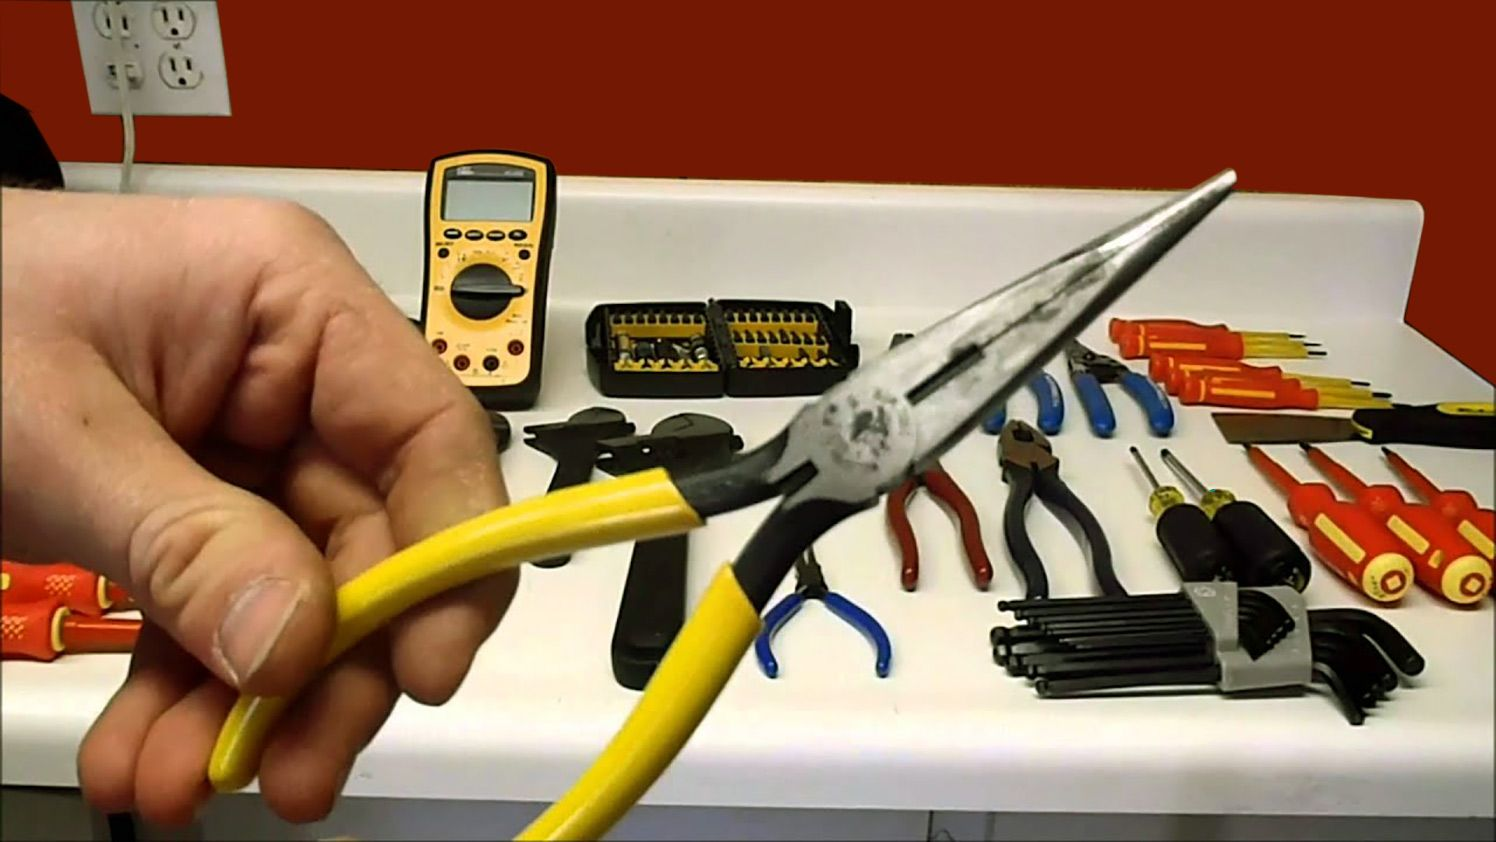 hight resolution of electrician general hand tools tech market support electrical installation electrical wiring electrical problems